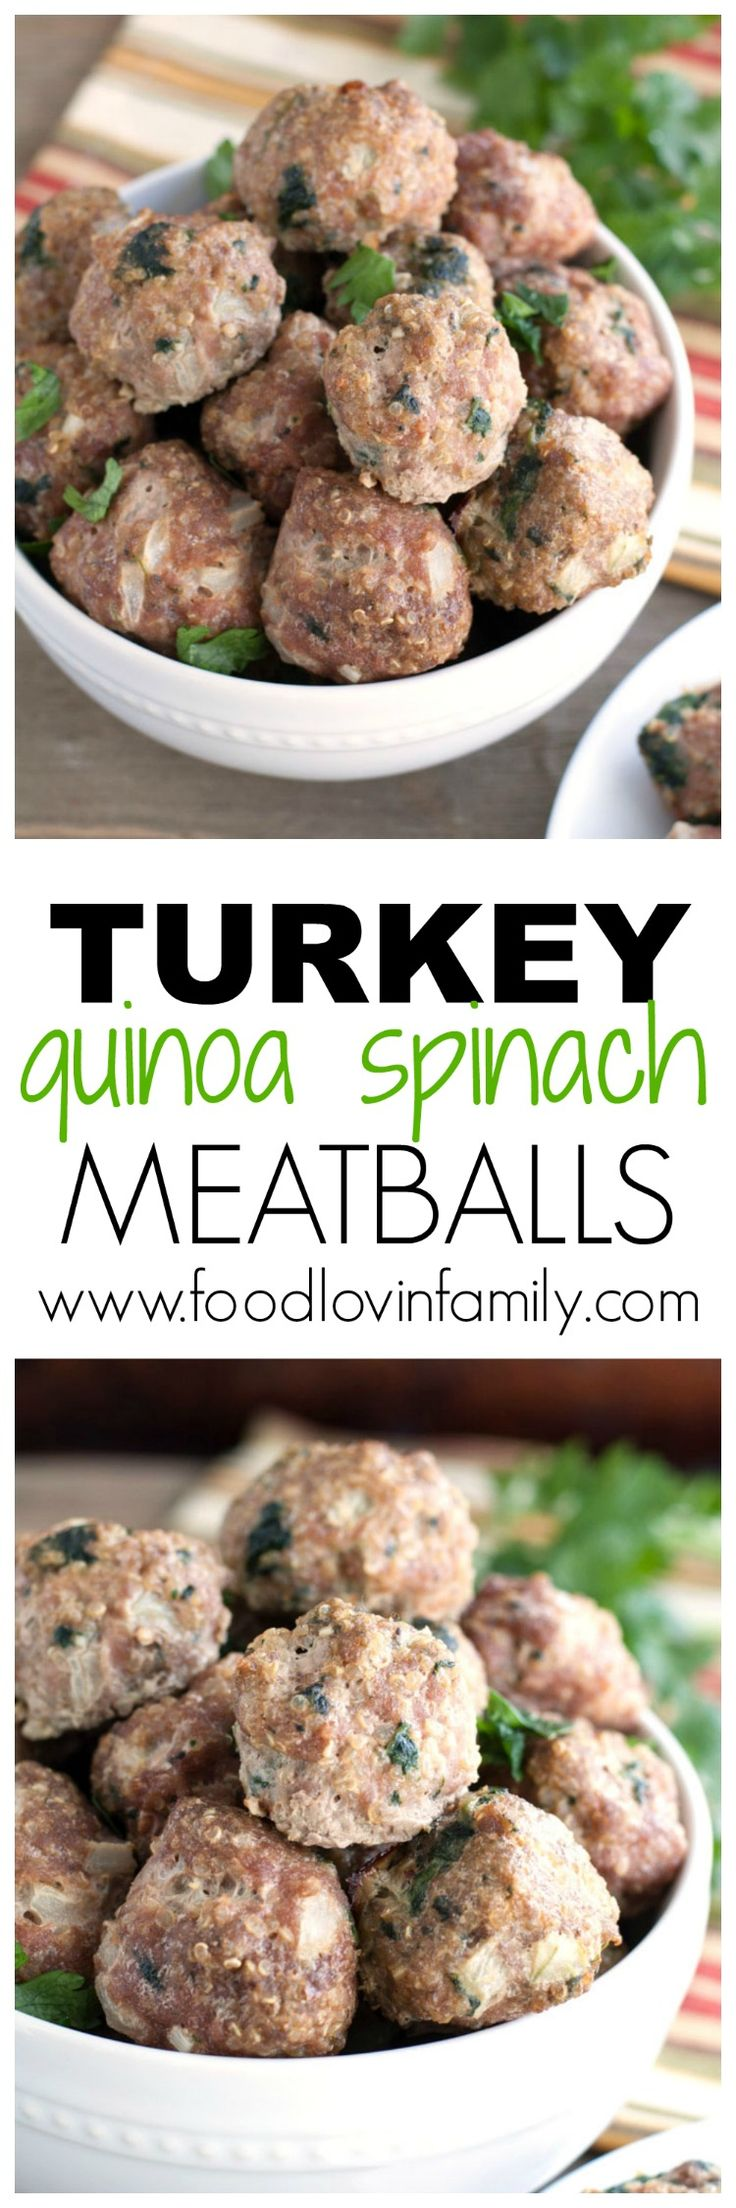 Turkey quinoa and spinach meatballs   These are great served with pasta, spaghetti squash or as an appetizer.  meatball  Quinoa http://www.foodlovinfamily.com/turkey-quinoa-and-spinach-meatballs/